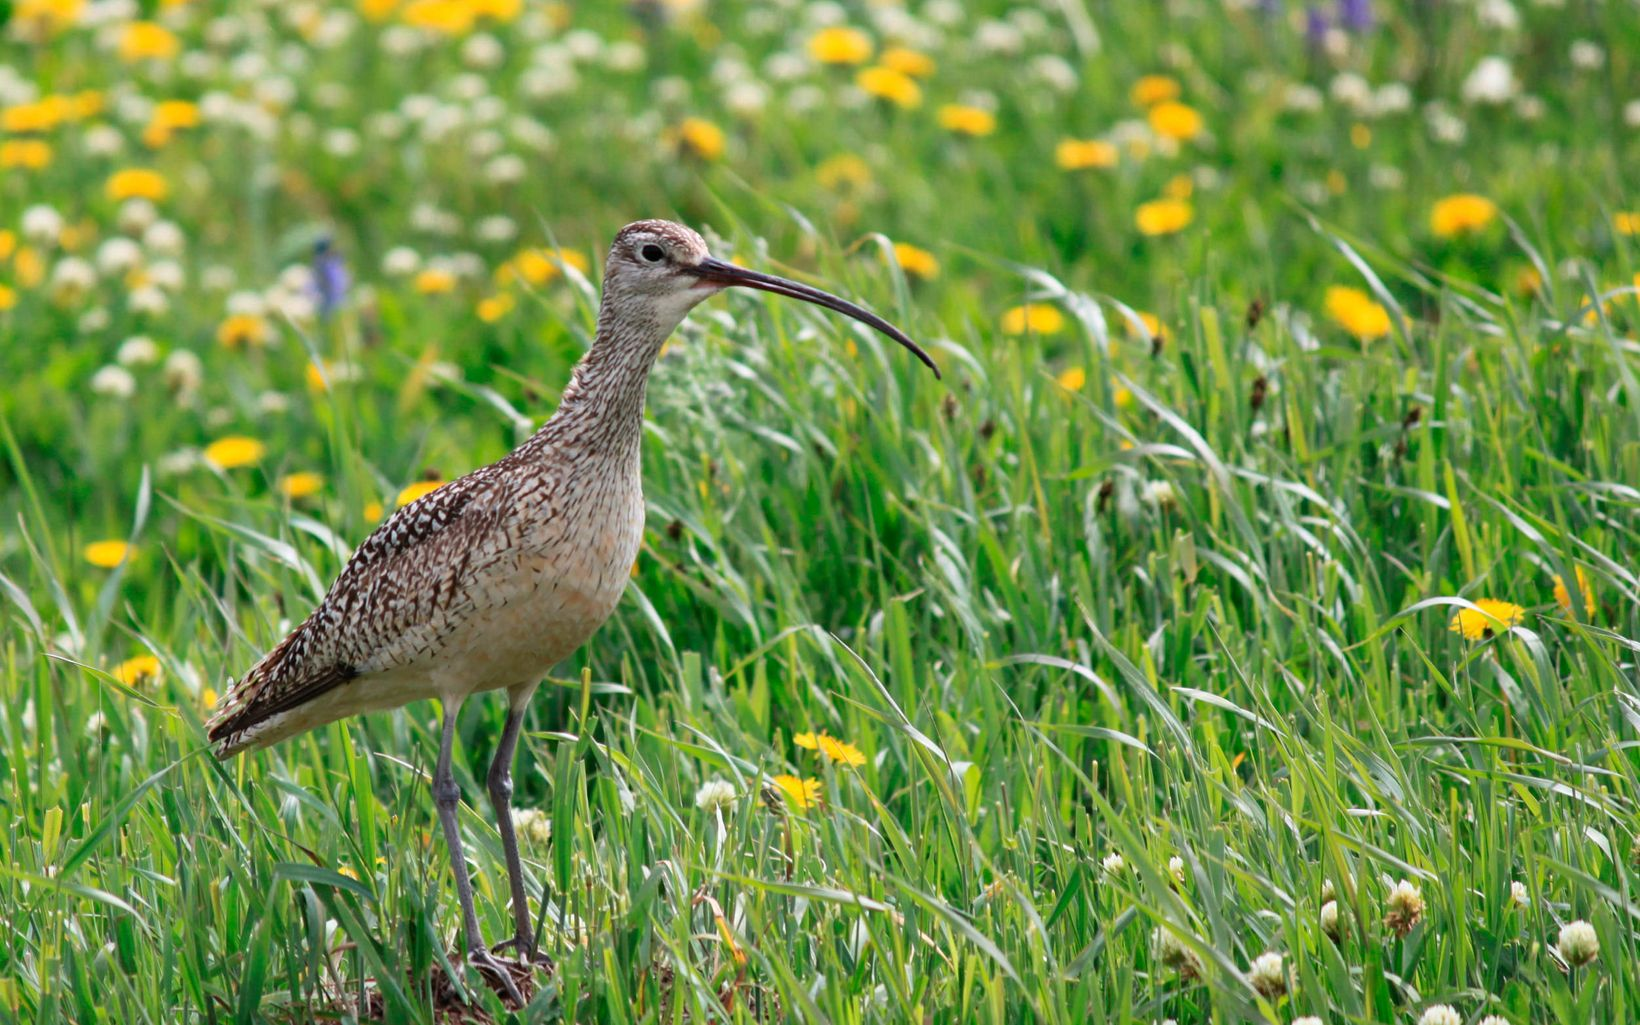 A mottled brown bird with a very long, curved beak stands in a field of wildflowers.